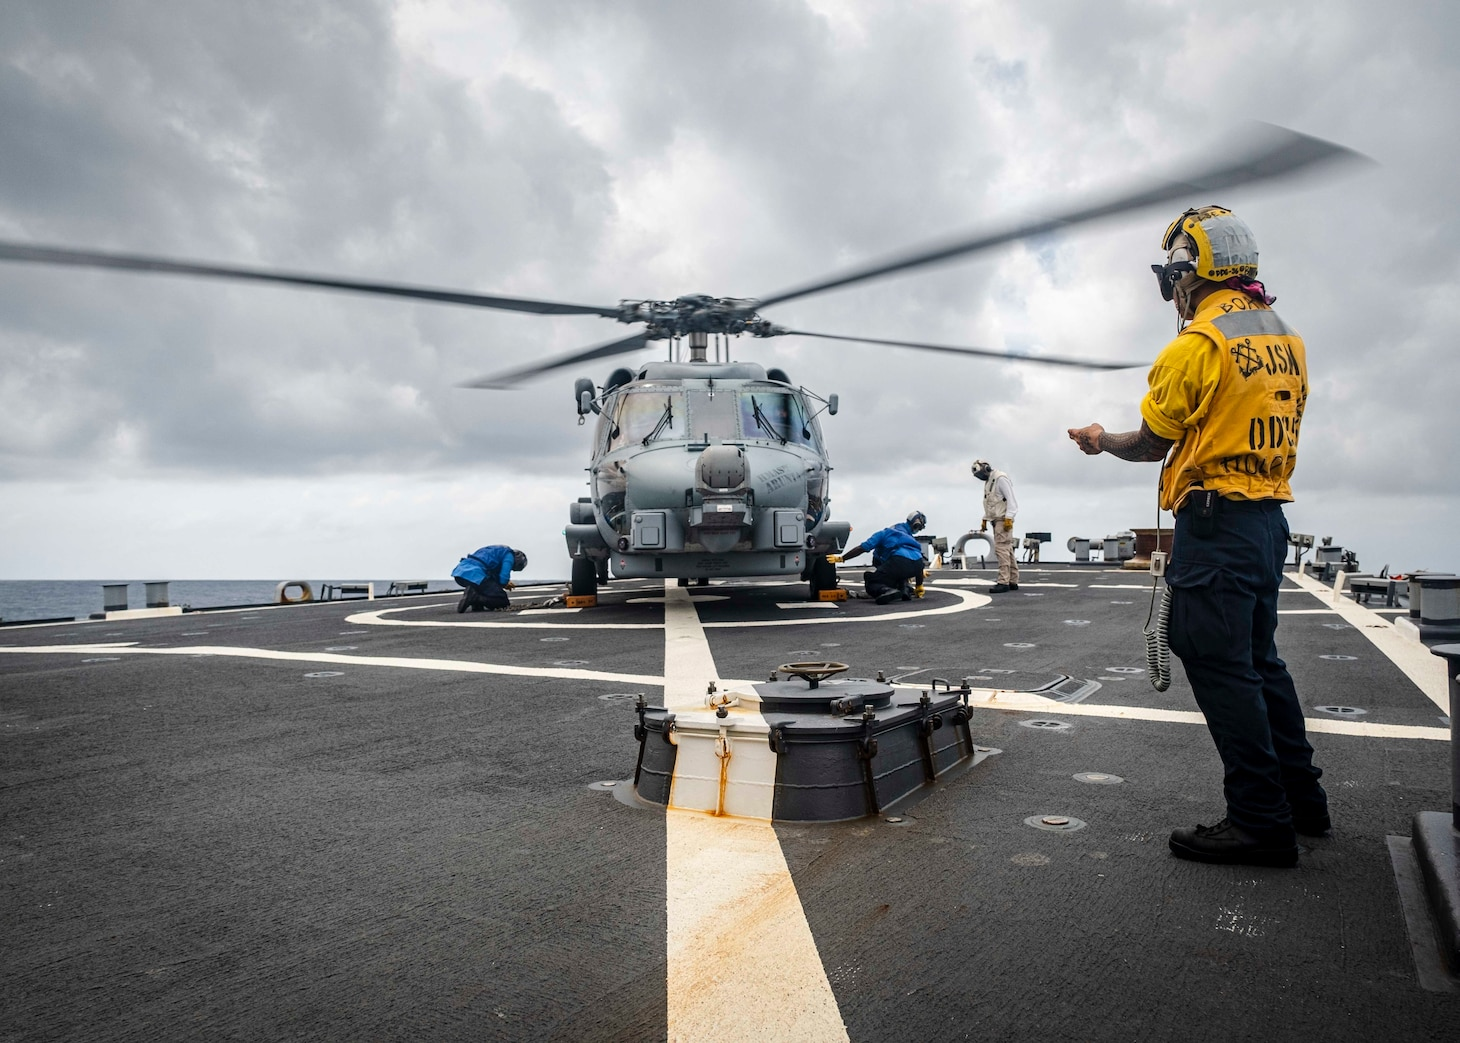 The U.S., JMSDF, and Royal Australian Navy participate in trilateral exercises in the South China Sea.